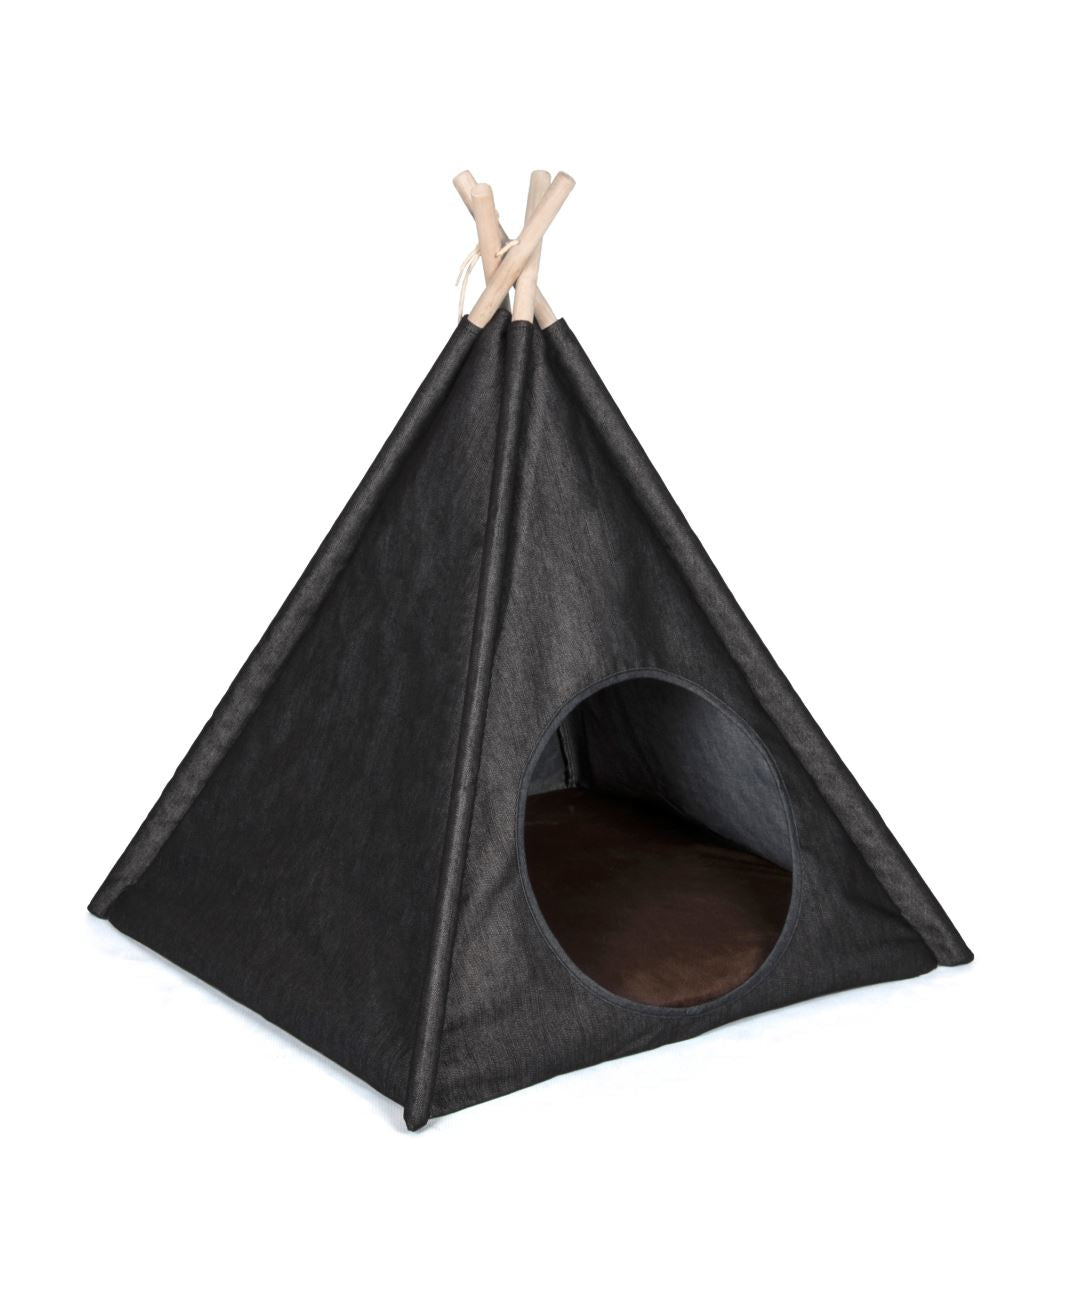 P.L.A.Y. Tent Pet Bed (3 Styles) Dog Bed PLAY Urban Denim